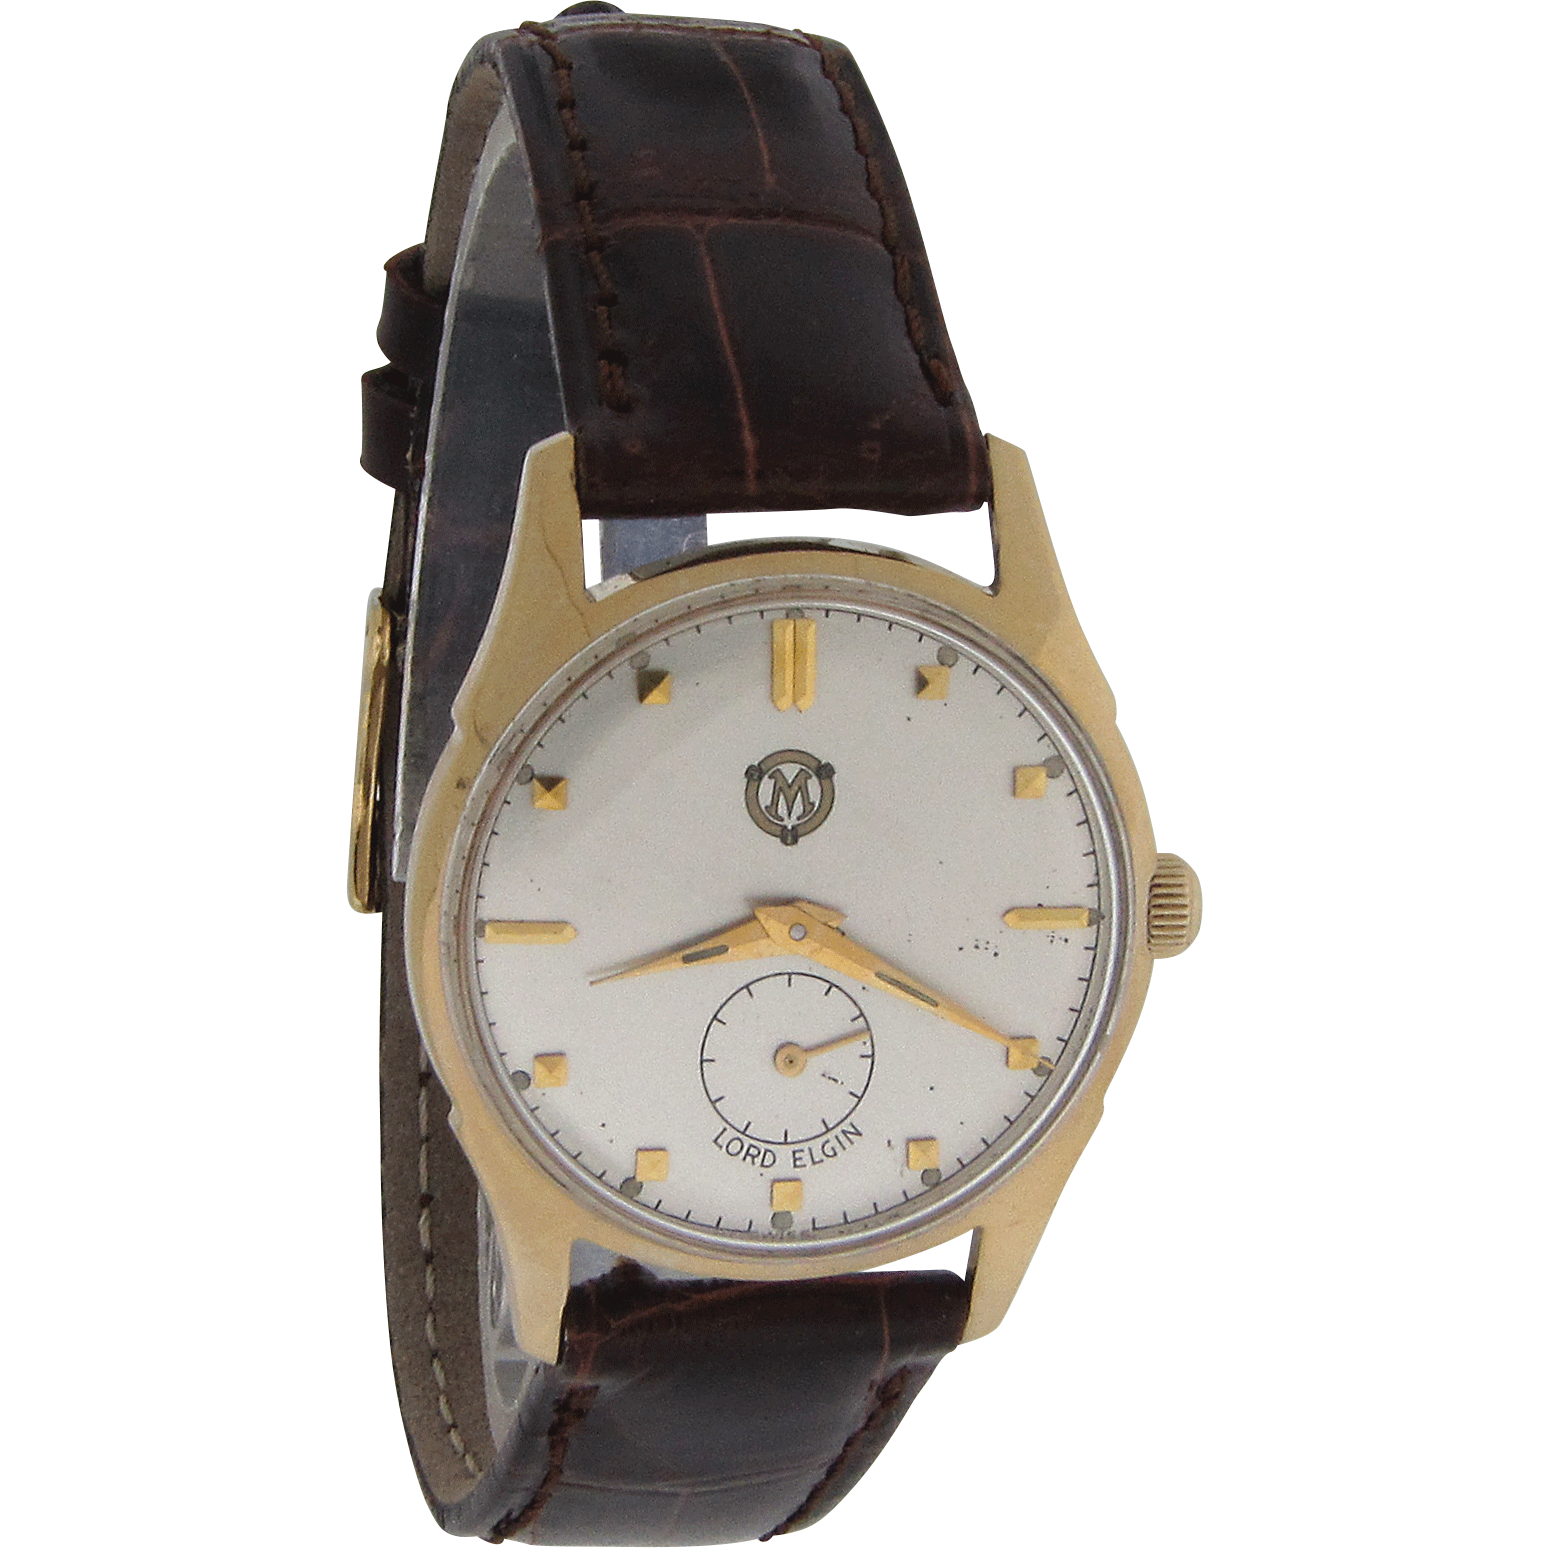 Mens Round 14K Gold Case Wrist Watch by Lord Elgin